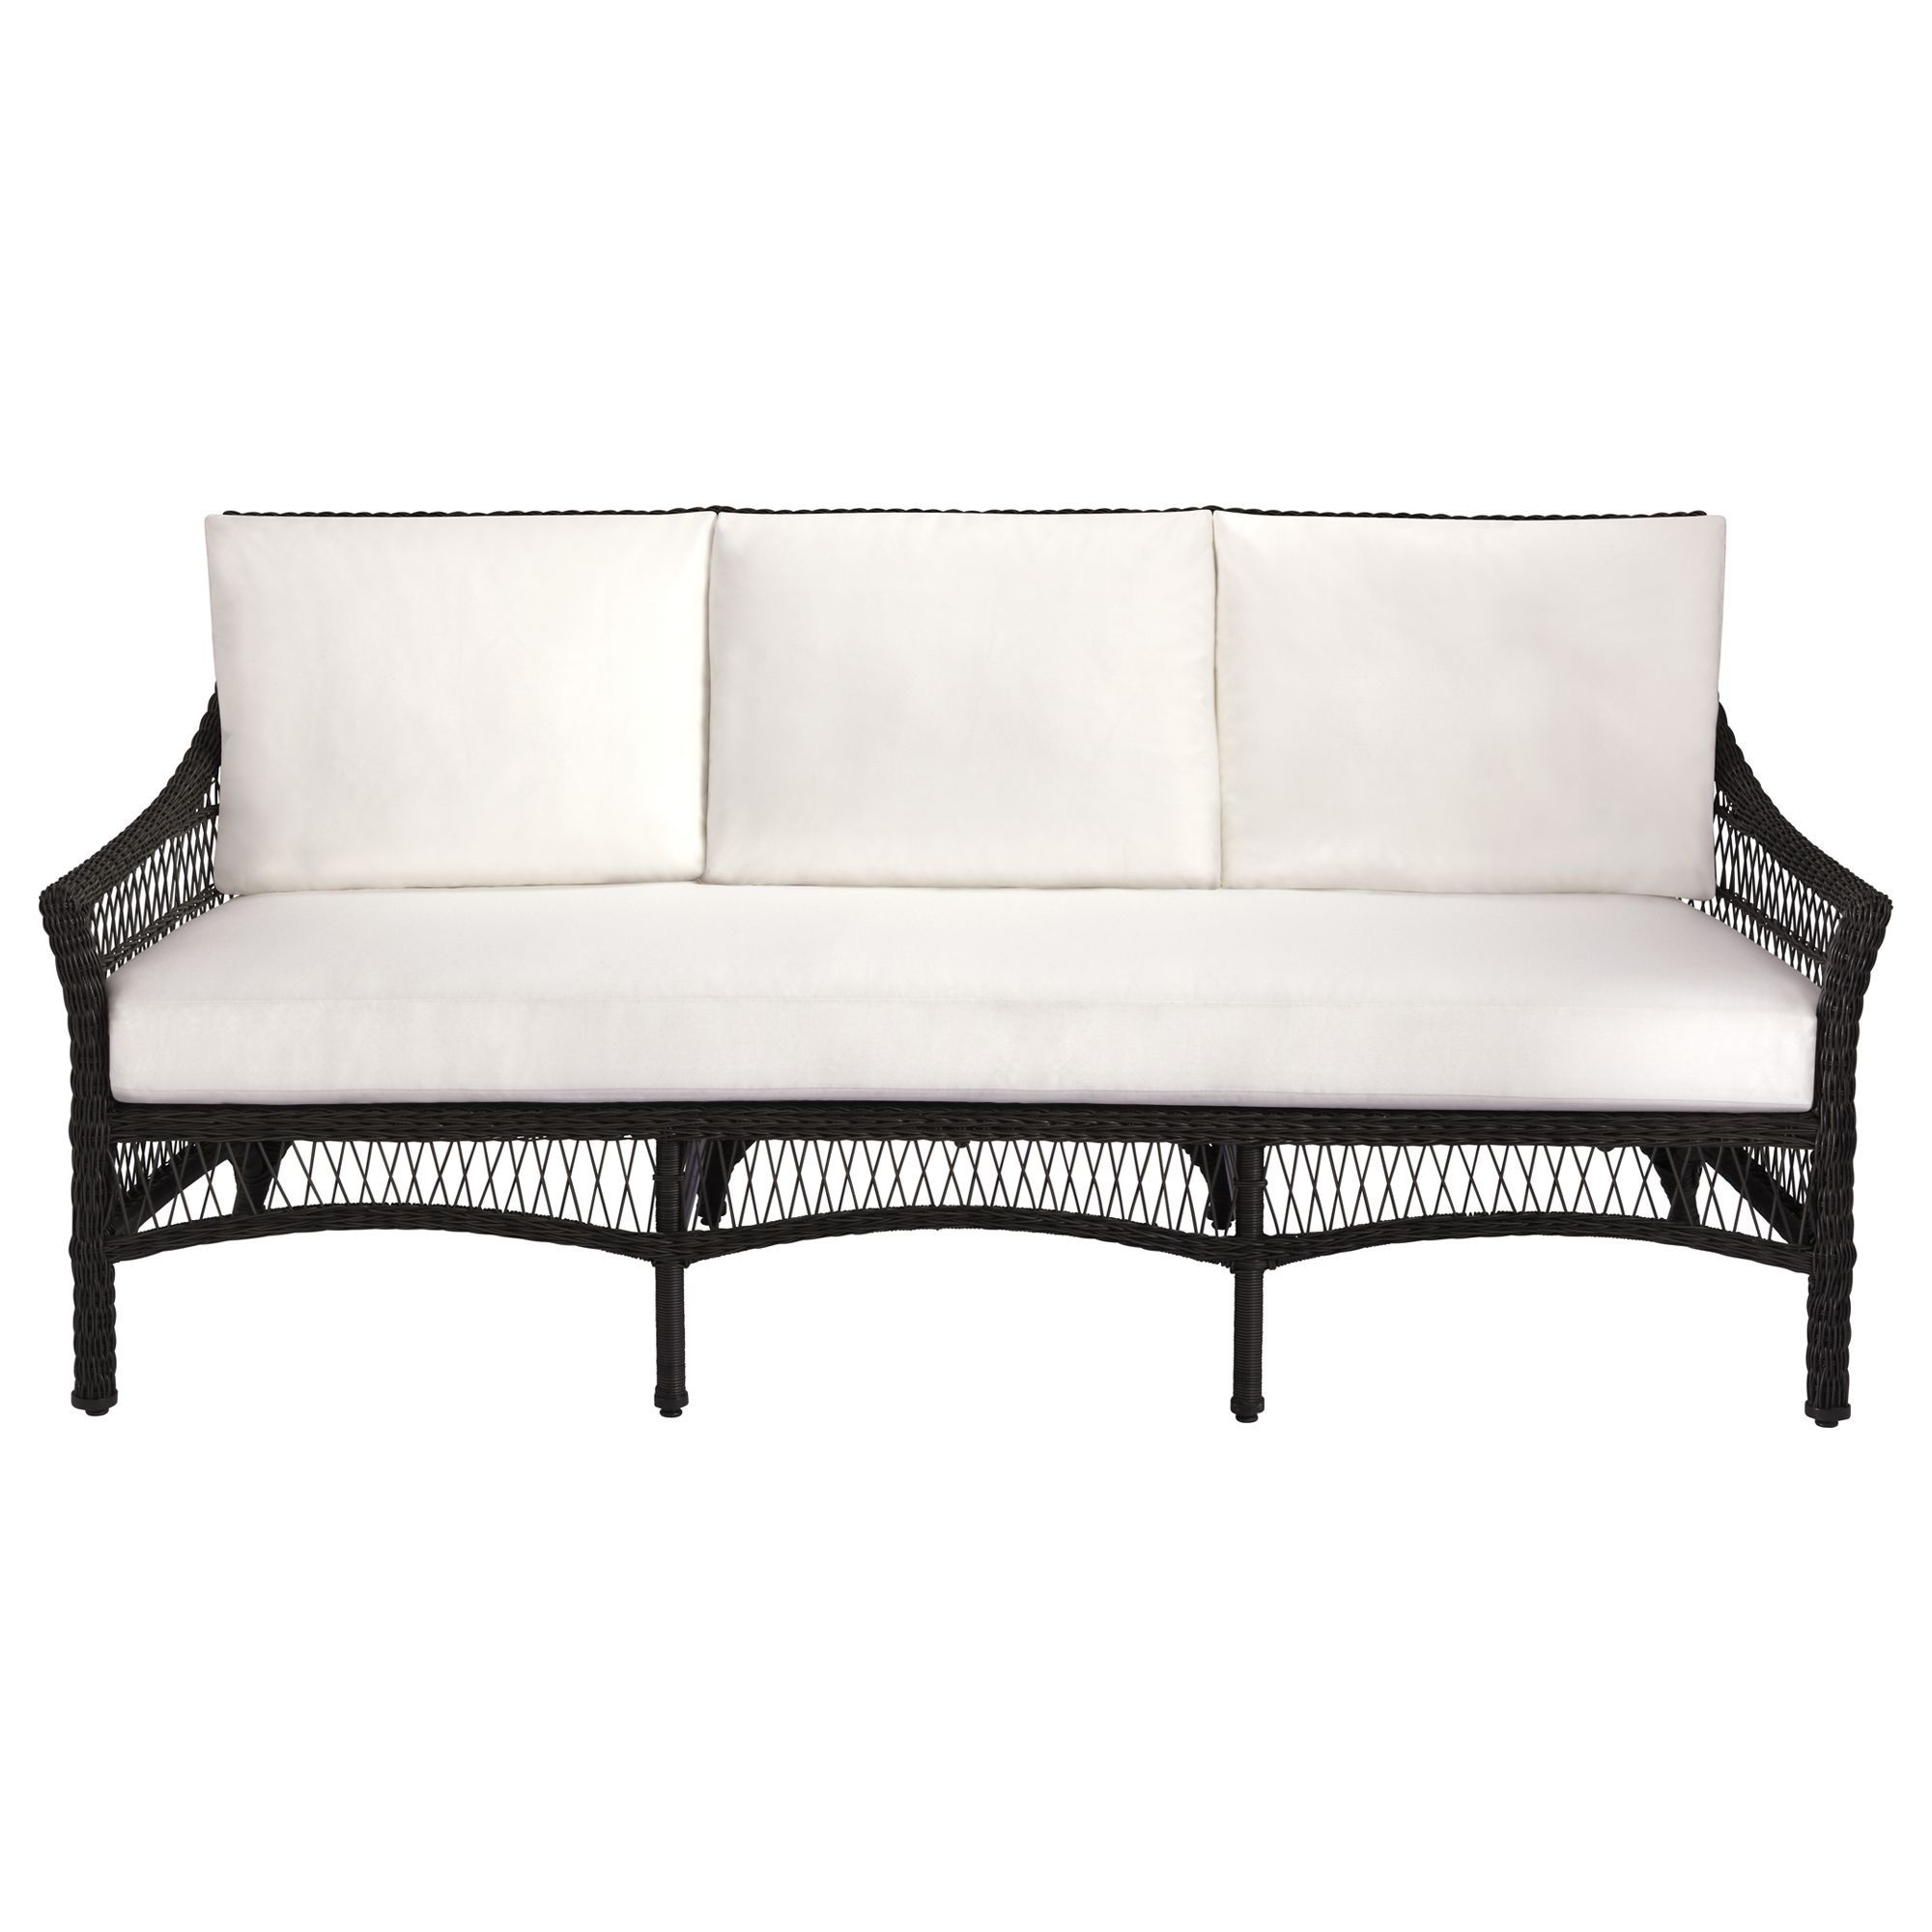 Buy Water Mill Settee By McGuire Furniture